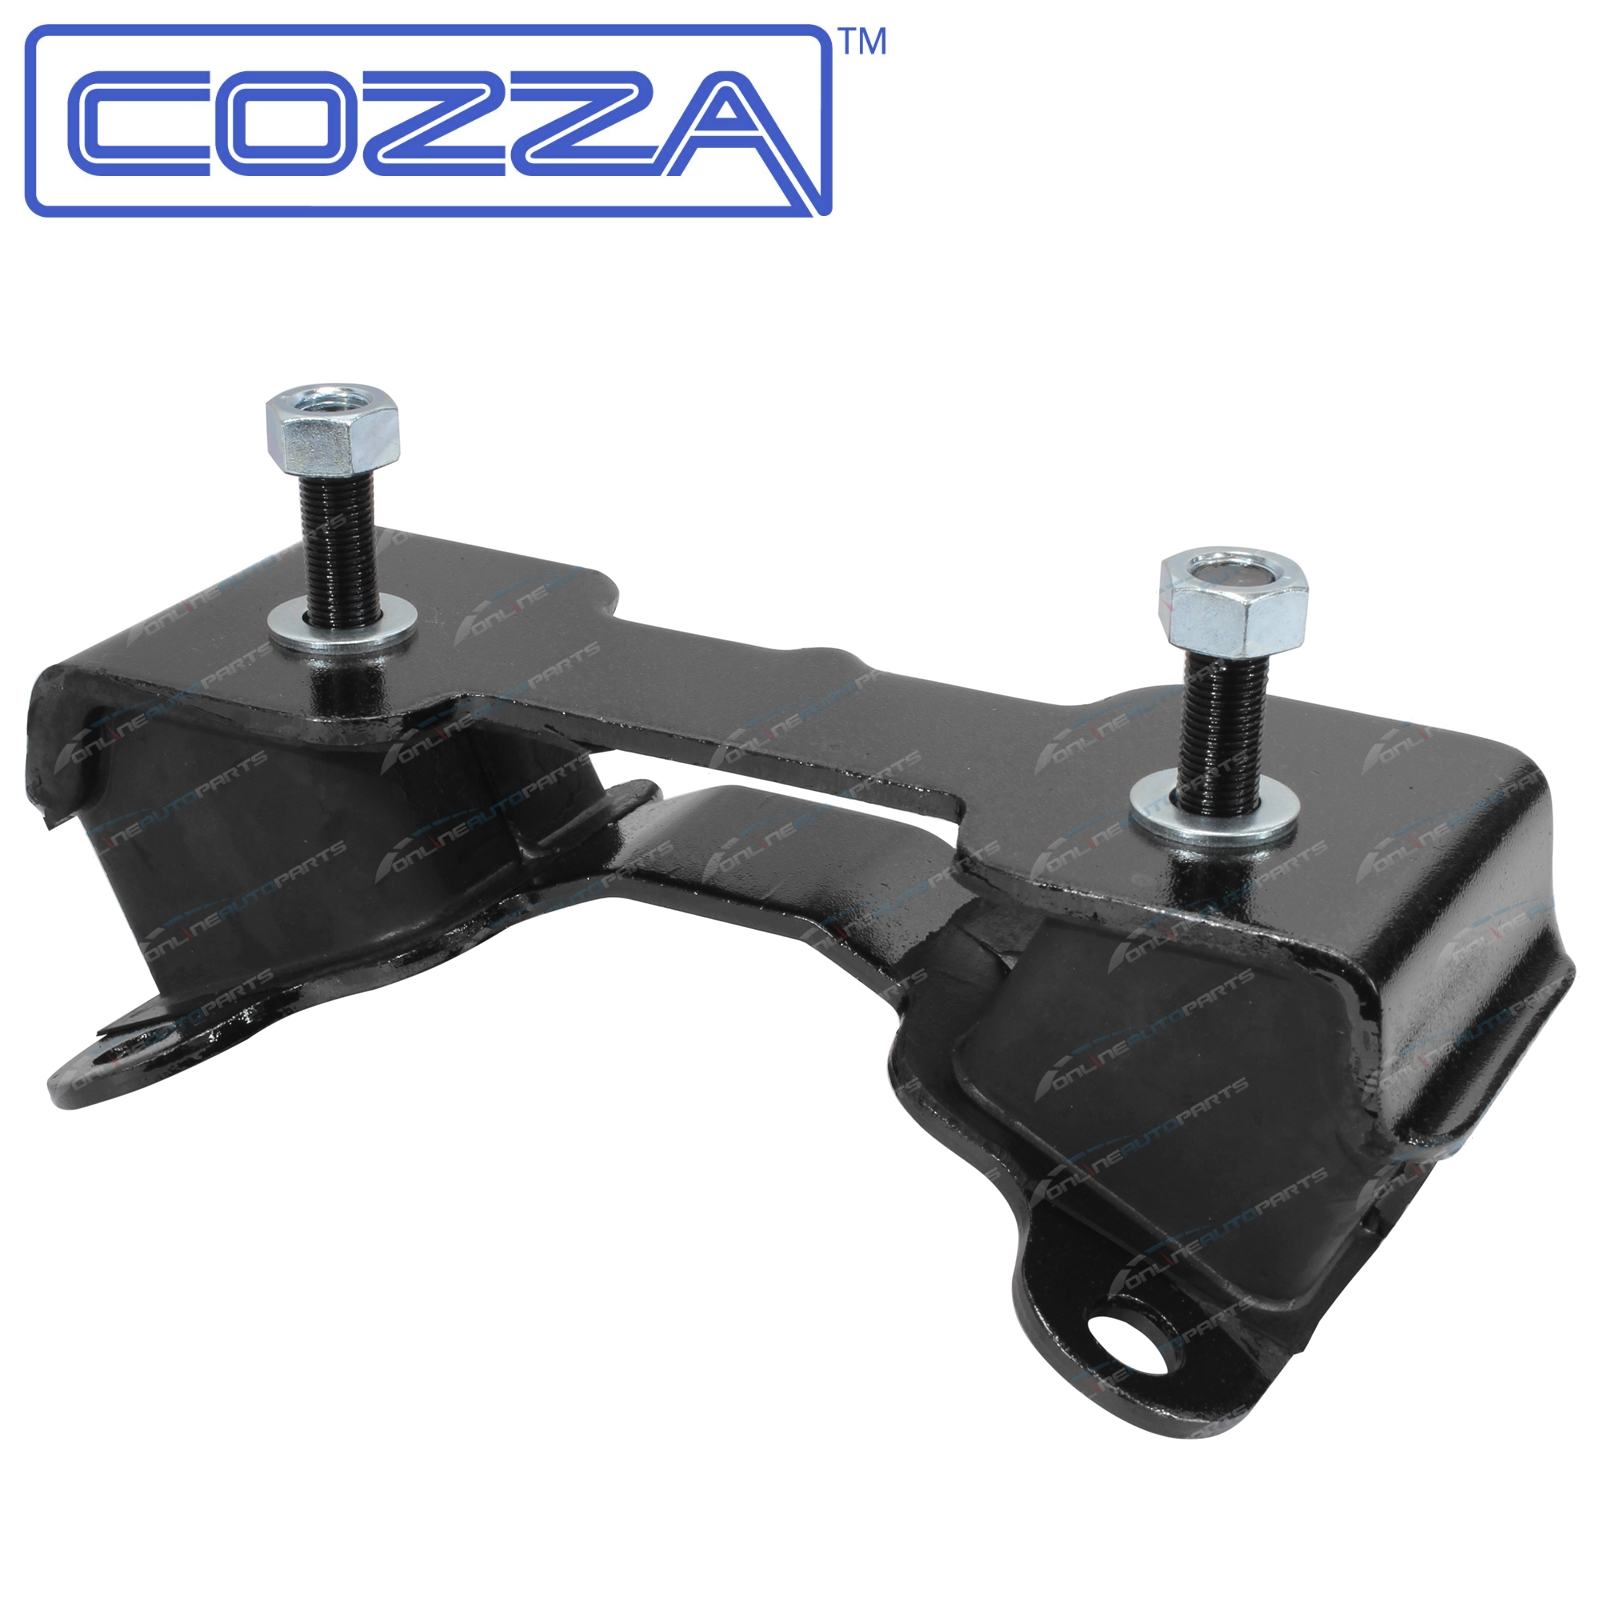 Details about Rear Transmission Gearbox Mount suits Landcruiser 11/84-on 2H  60 Series Engine